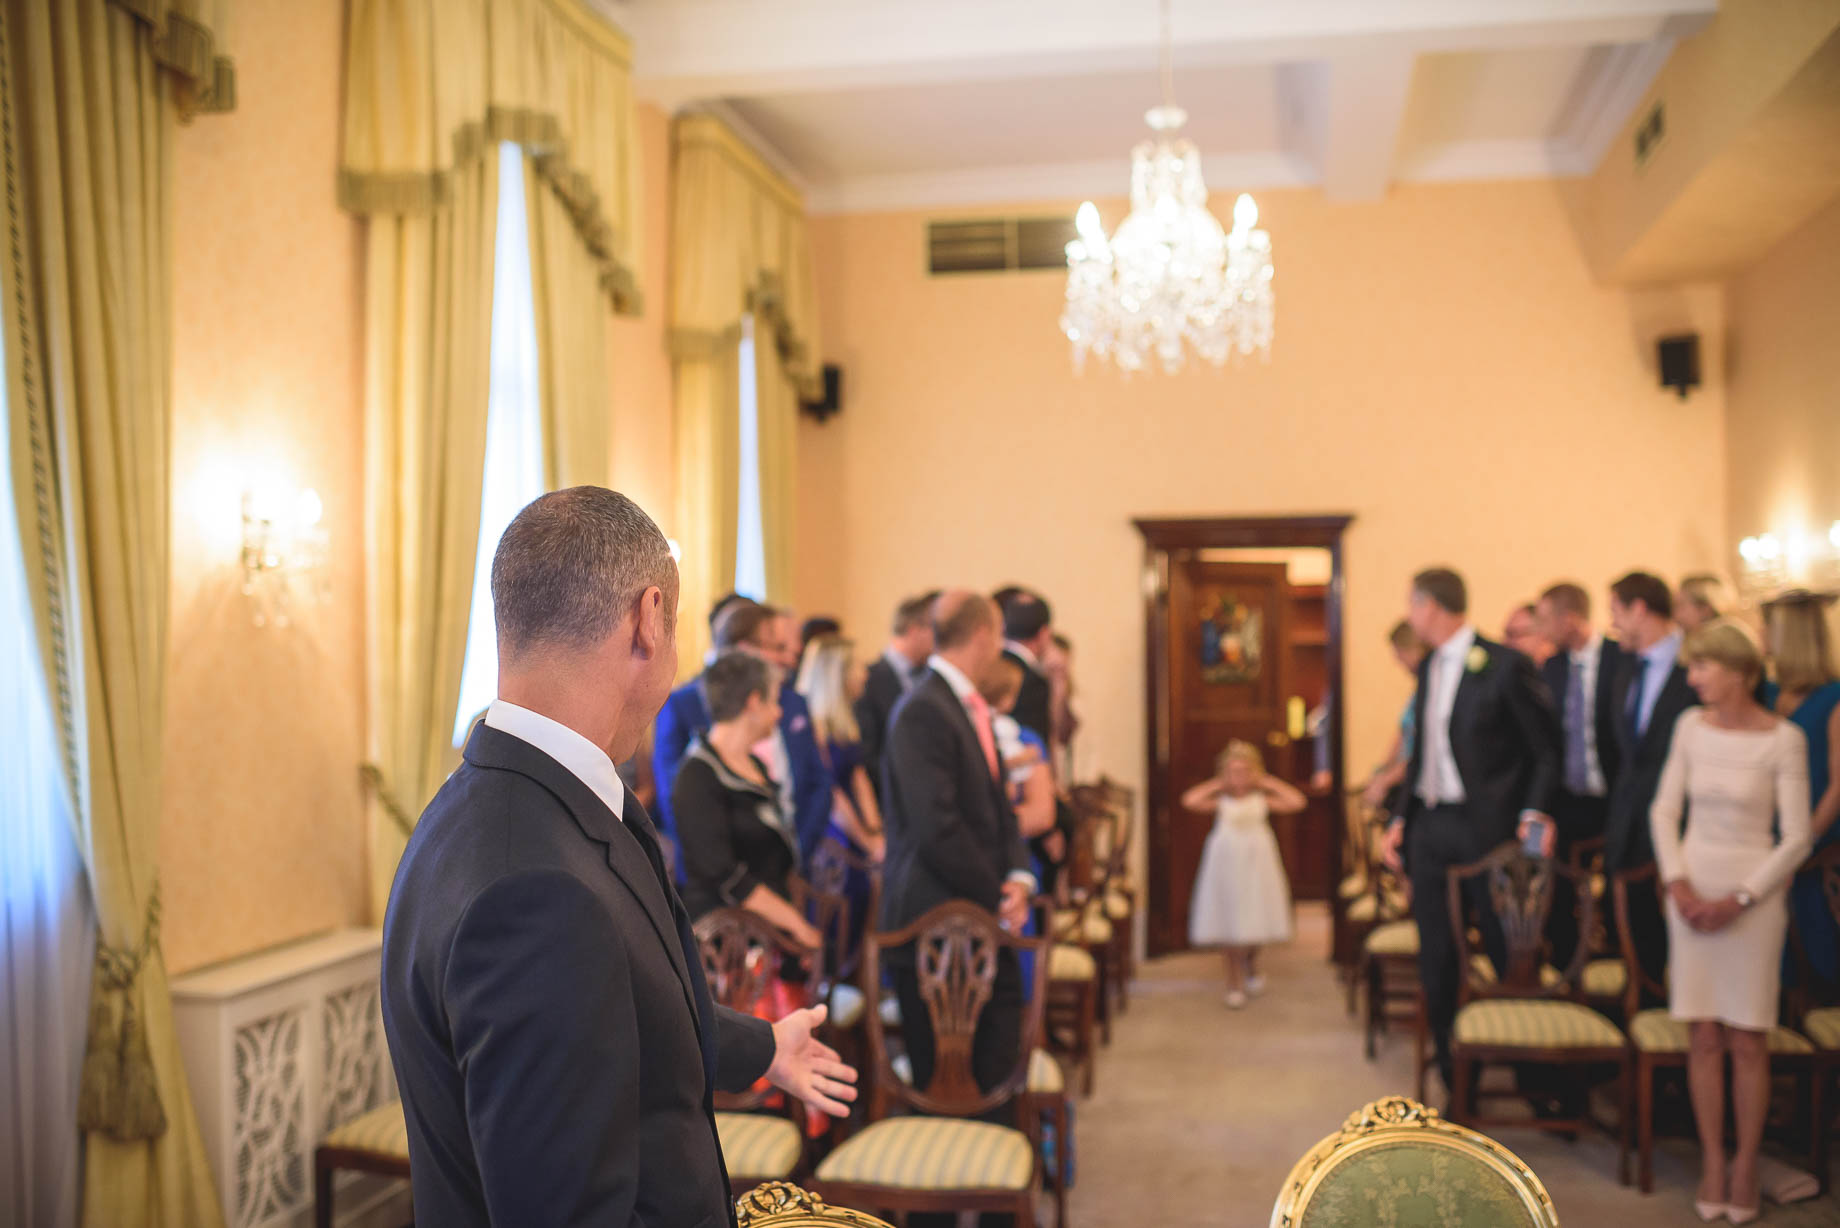 Chelsea and Mayfair wedding photography - Guy Collier - Vicki and Damien (46 of 126)